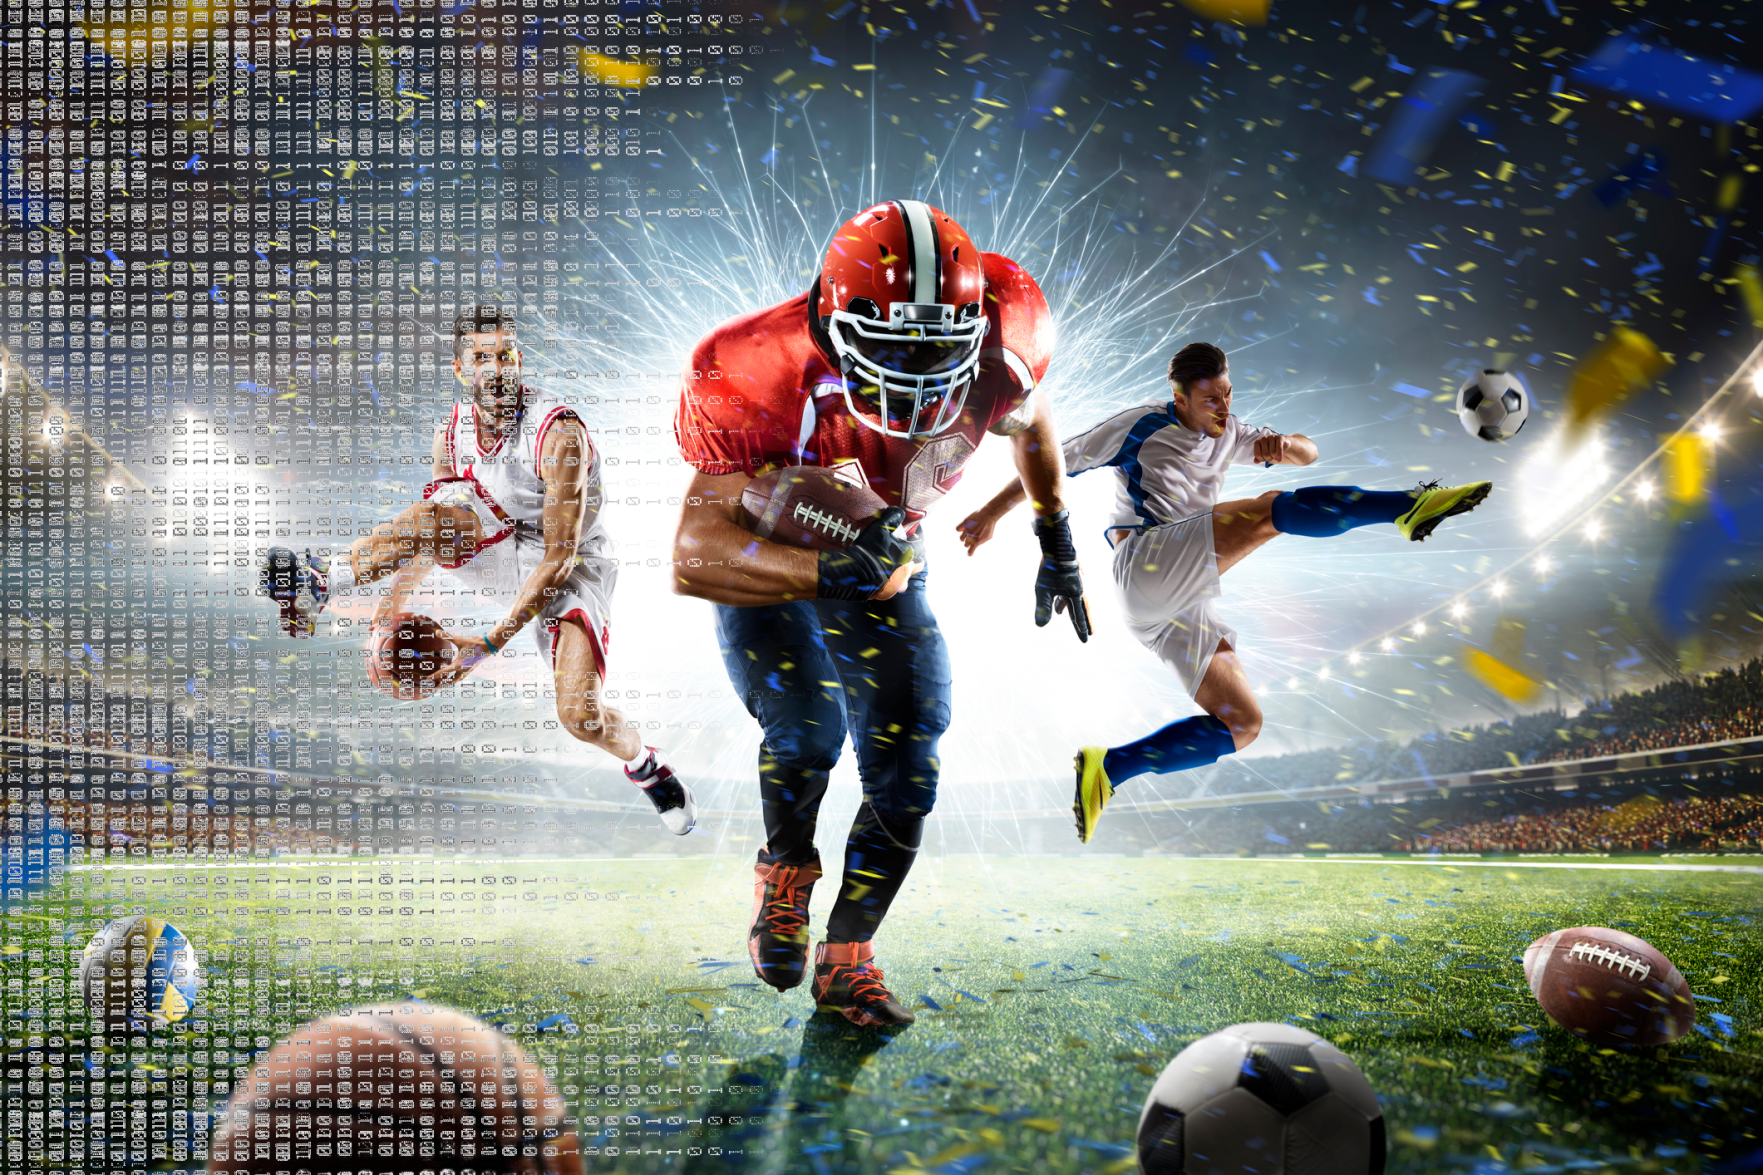 Richland Source, Abundat build & launch AI software to cover high school sports